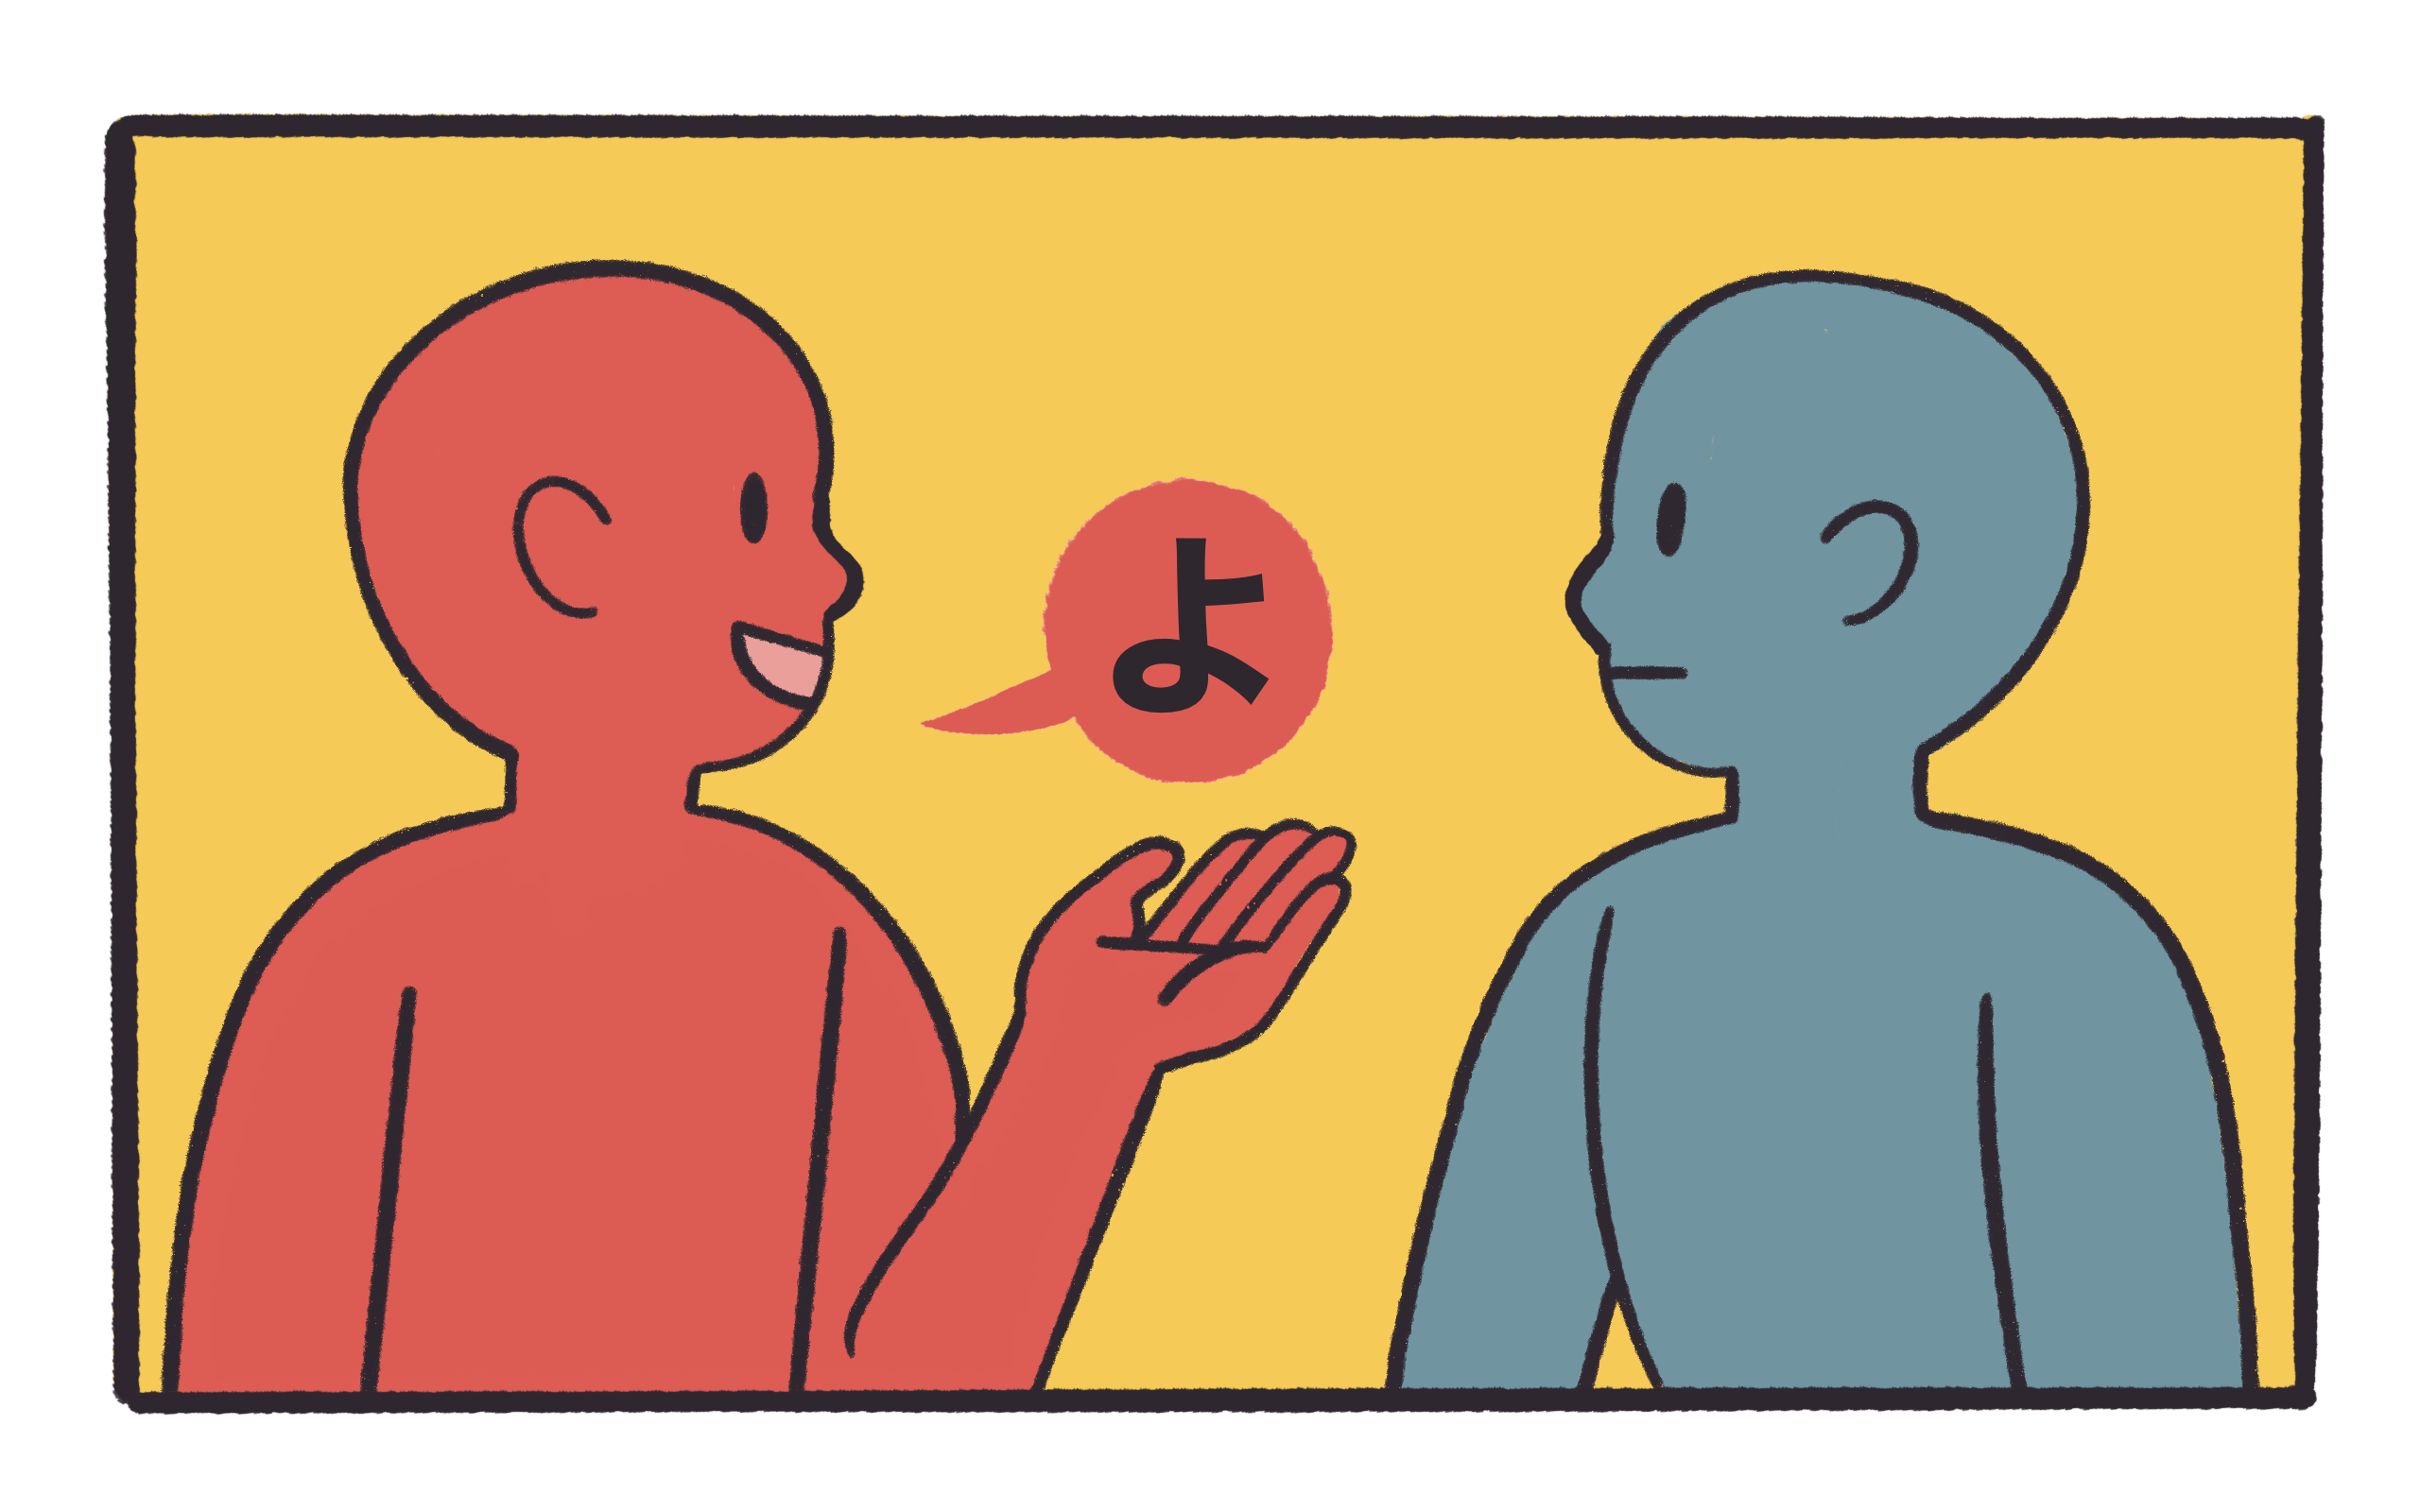 The left person is speaking out a speech bubble saying よ